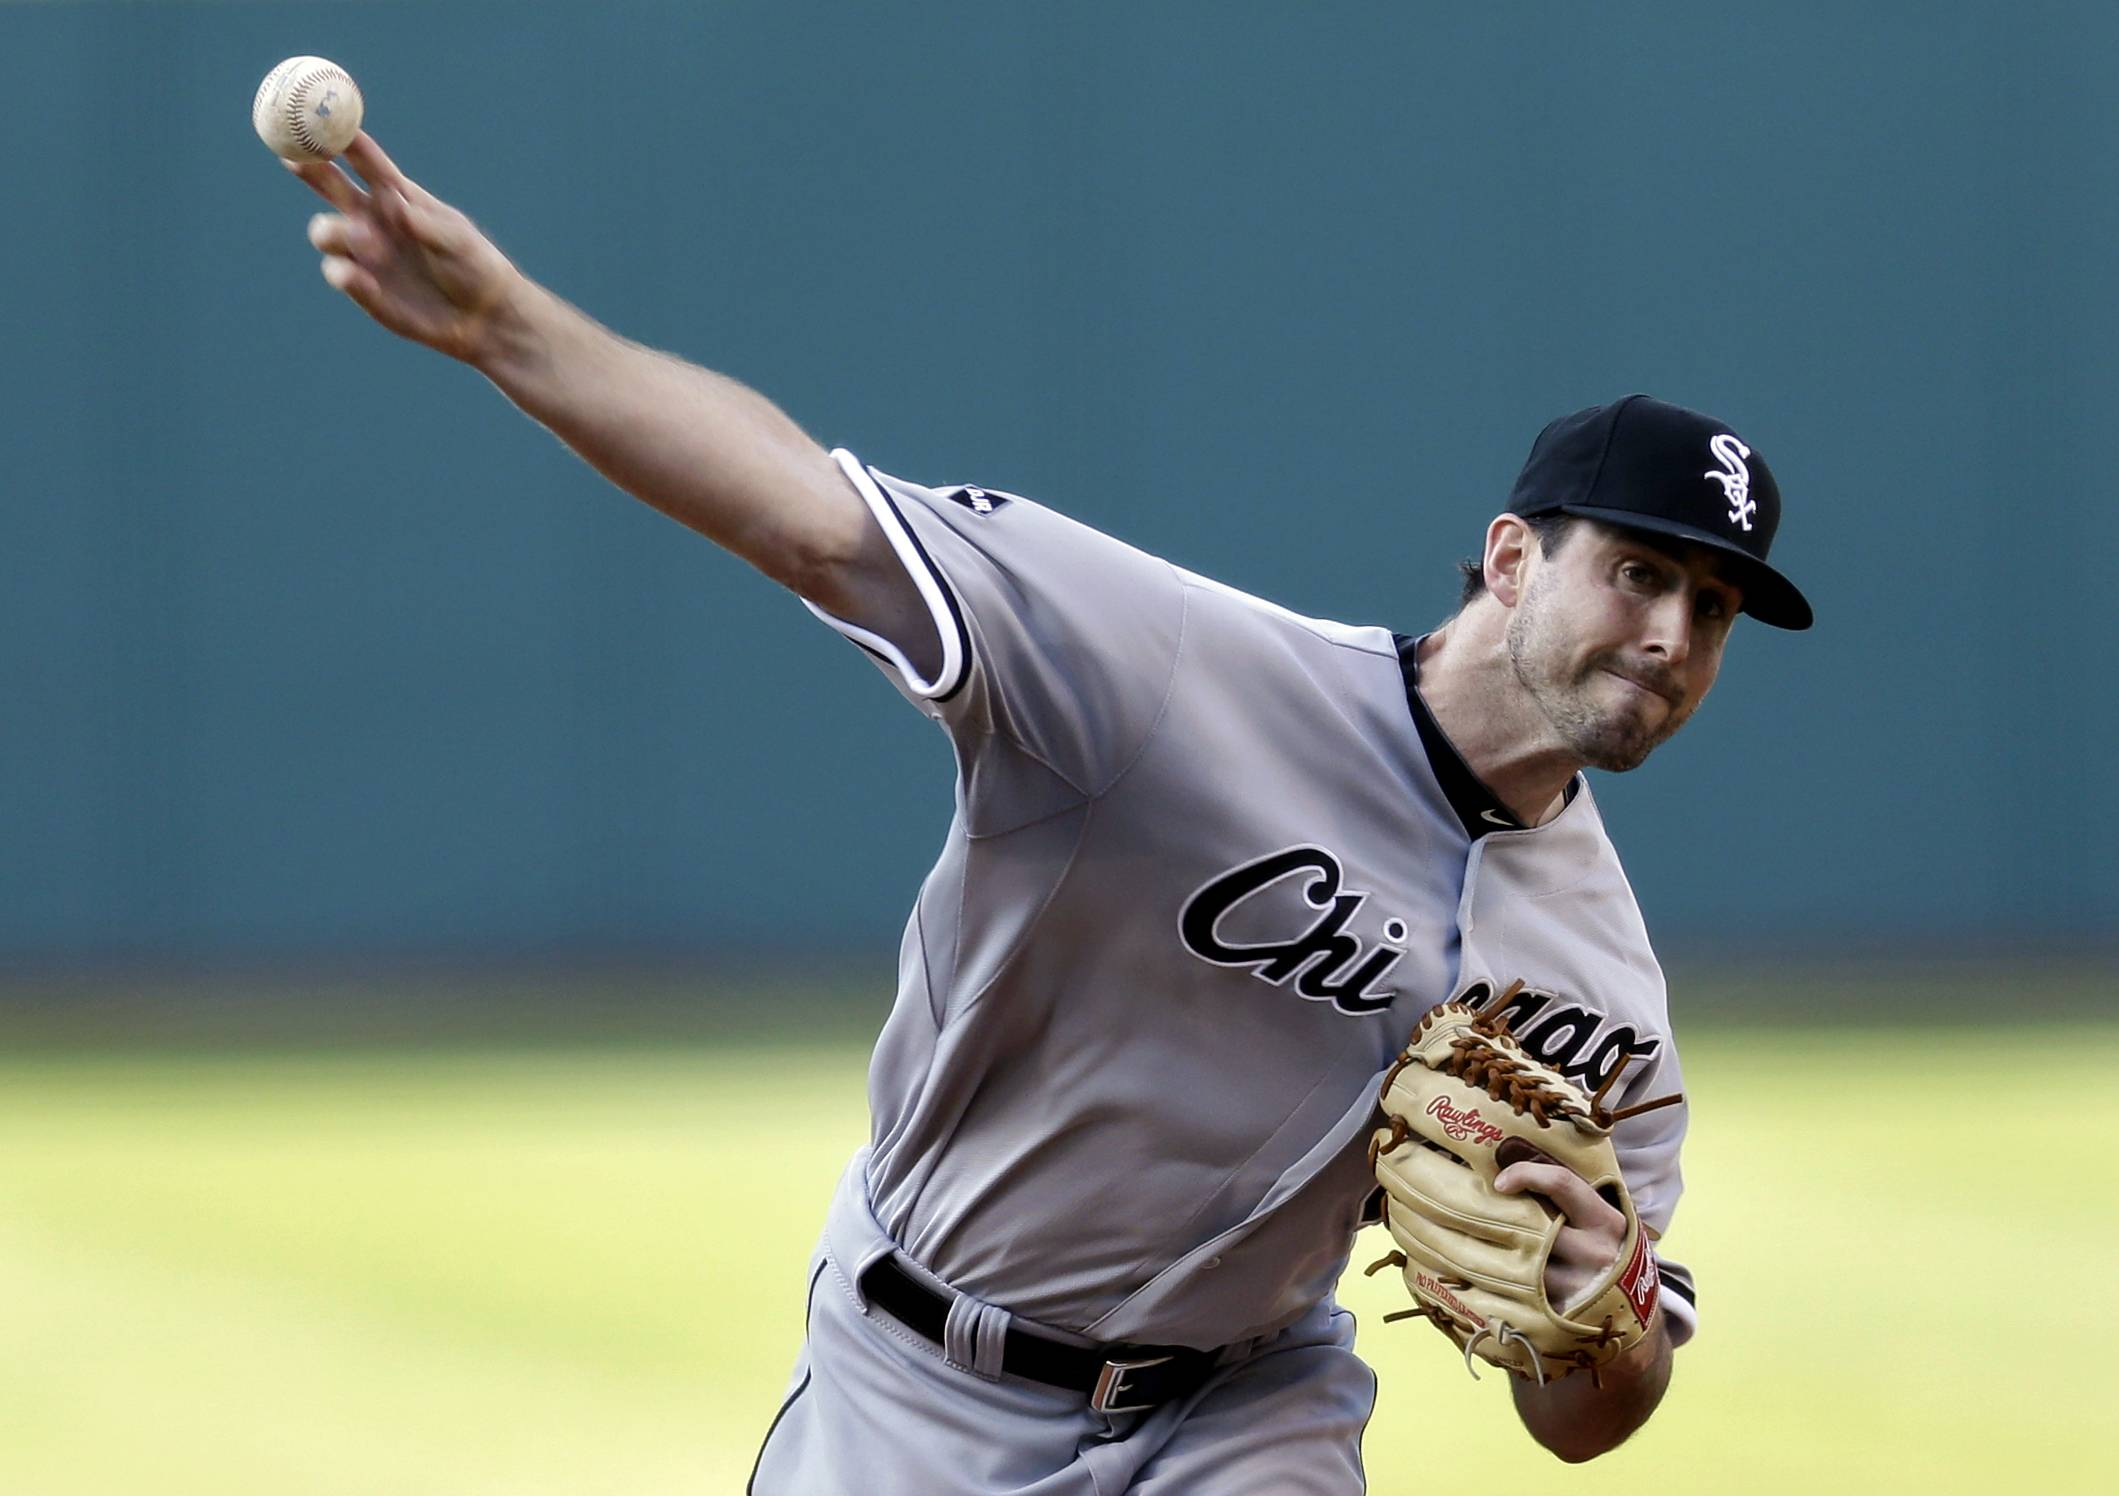 Chicago White Sox starting pitcher Scott Carroll delivers in the first inning of a baseball game against the Cleveland Indians, Saturday, May 3, 2014, in Cleveland.